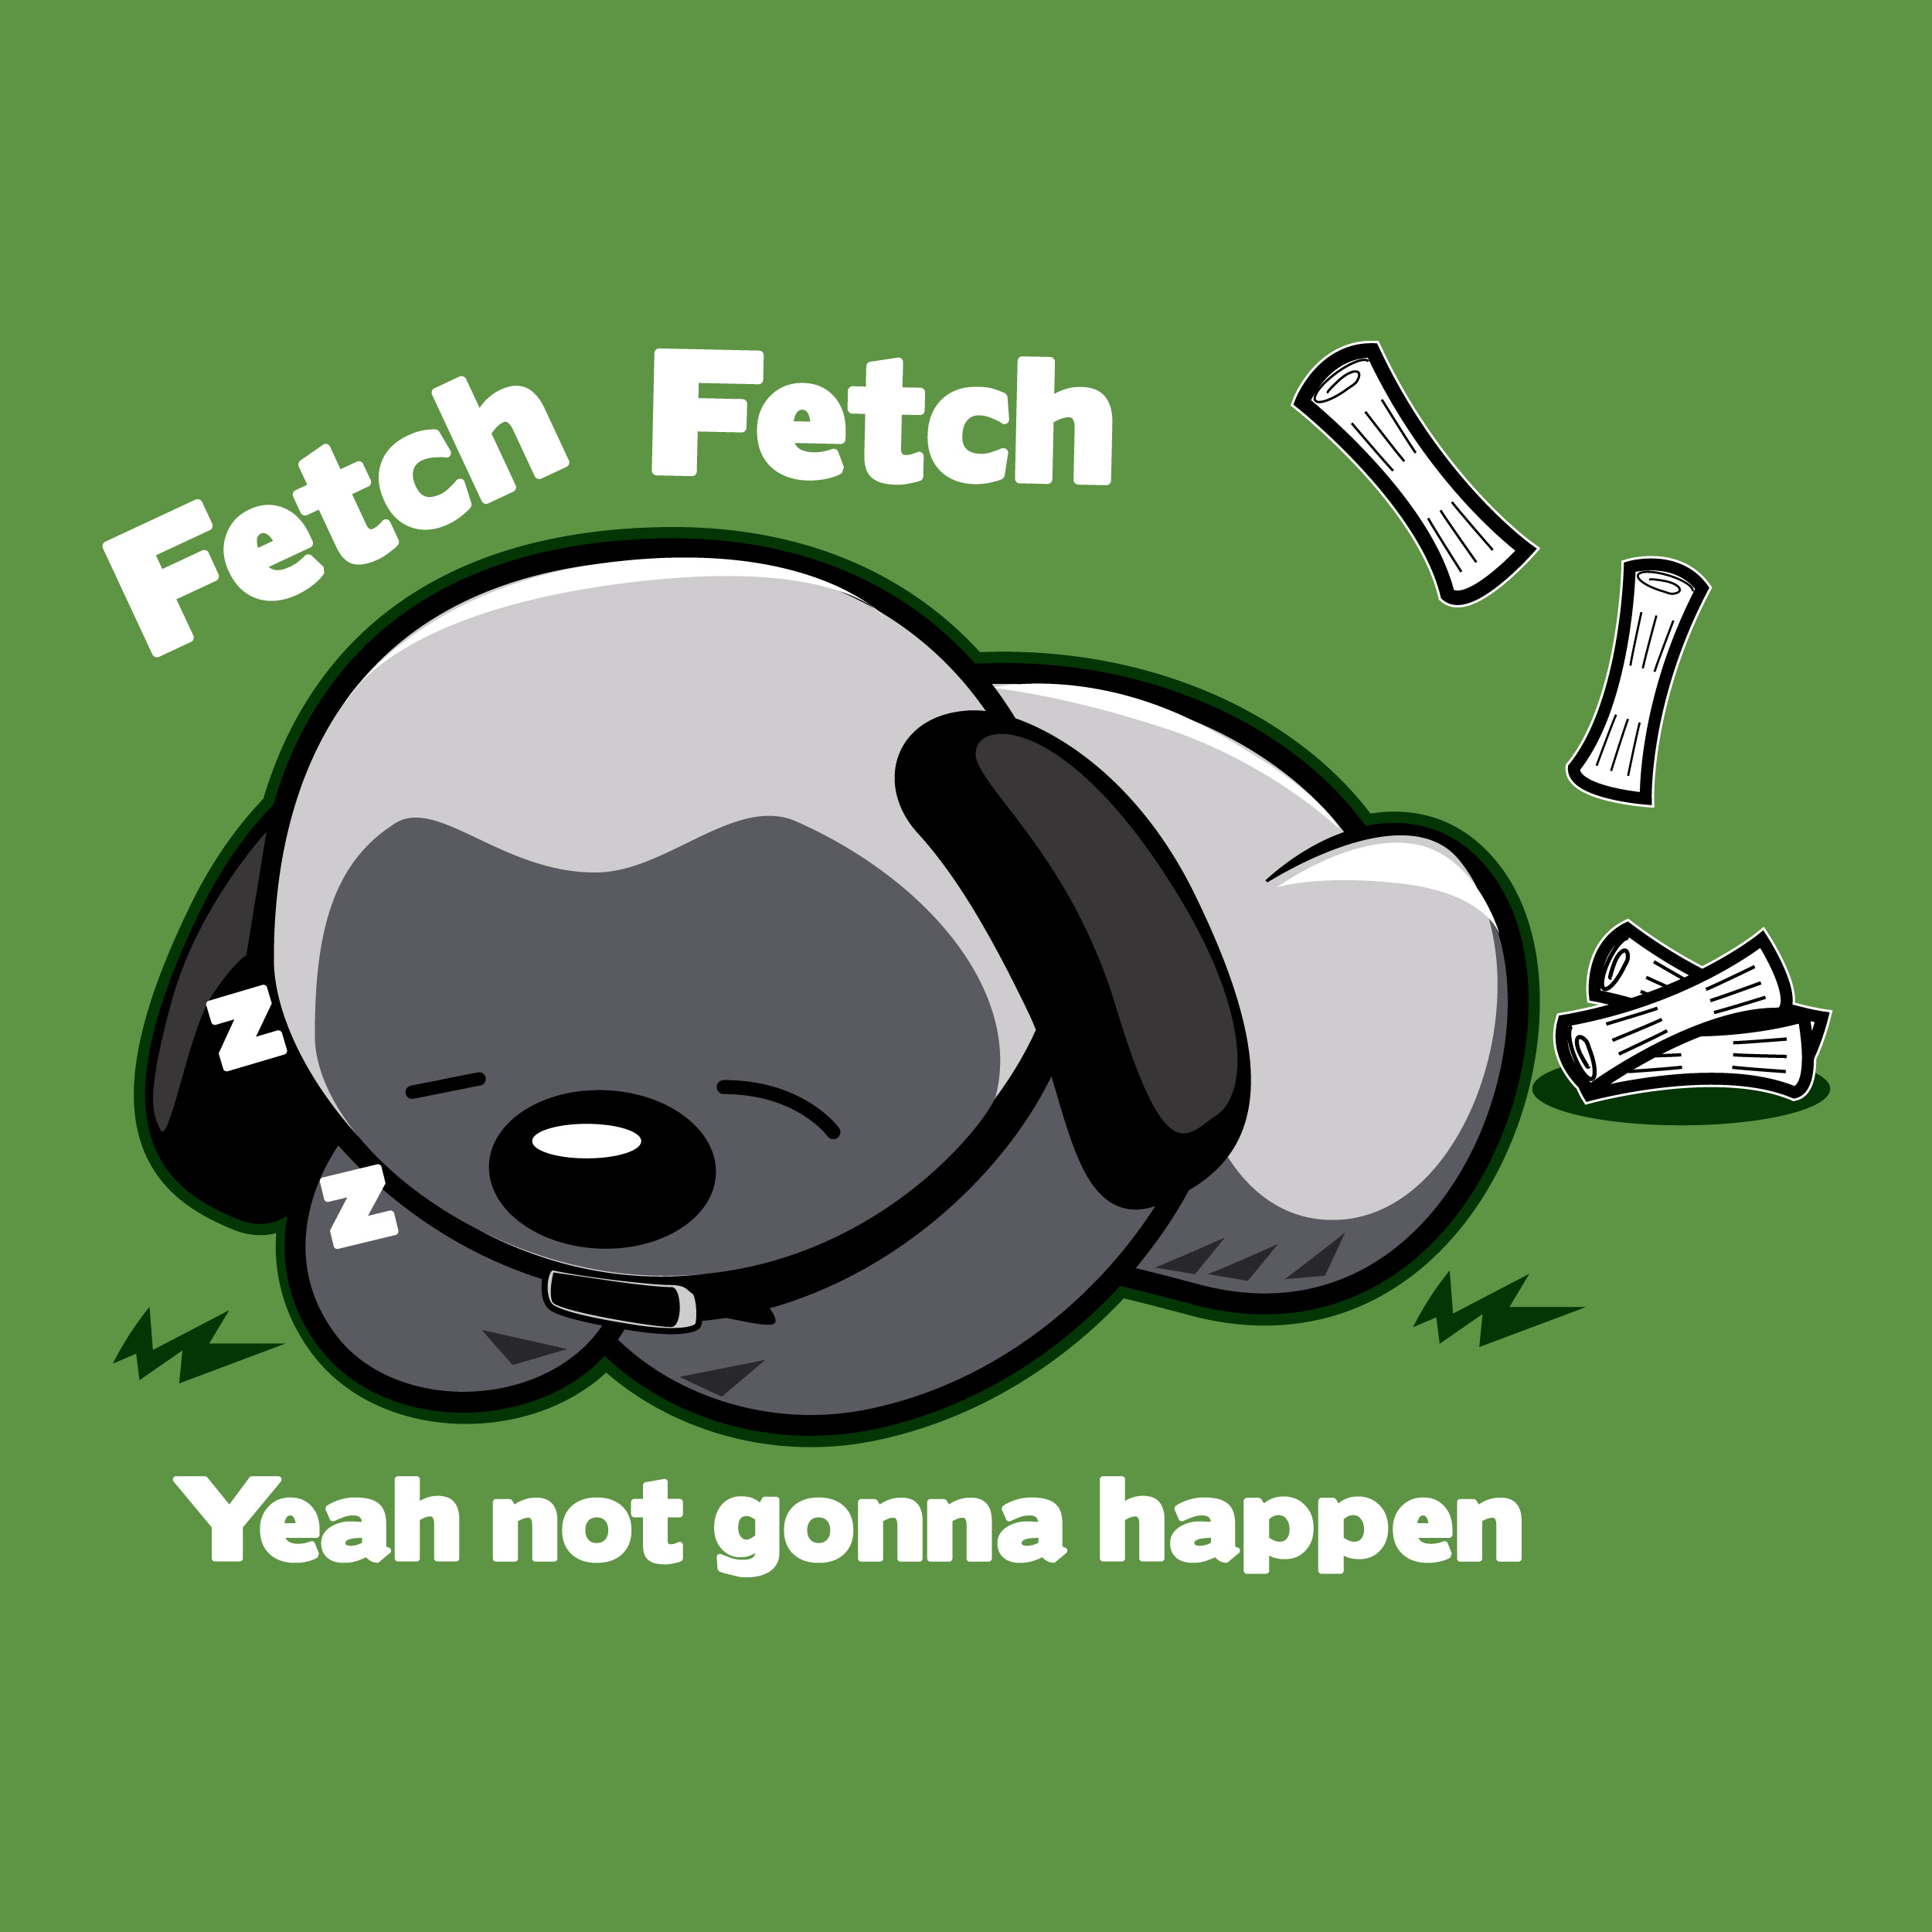 Fetch not today